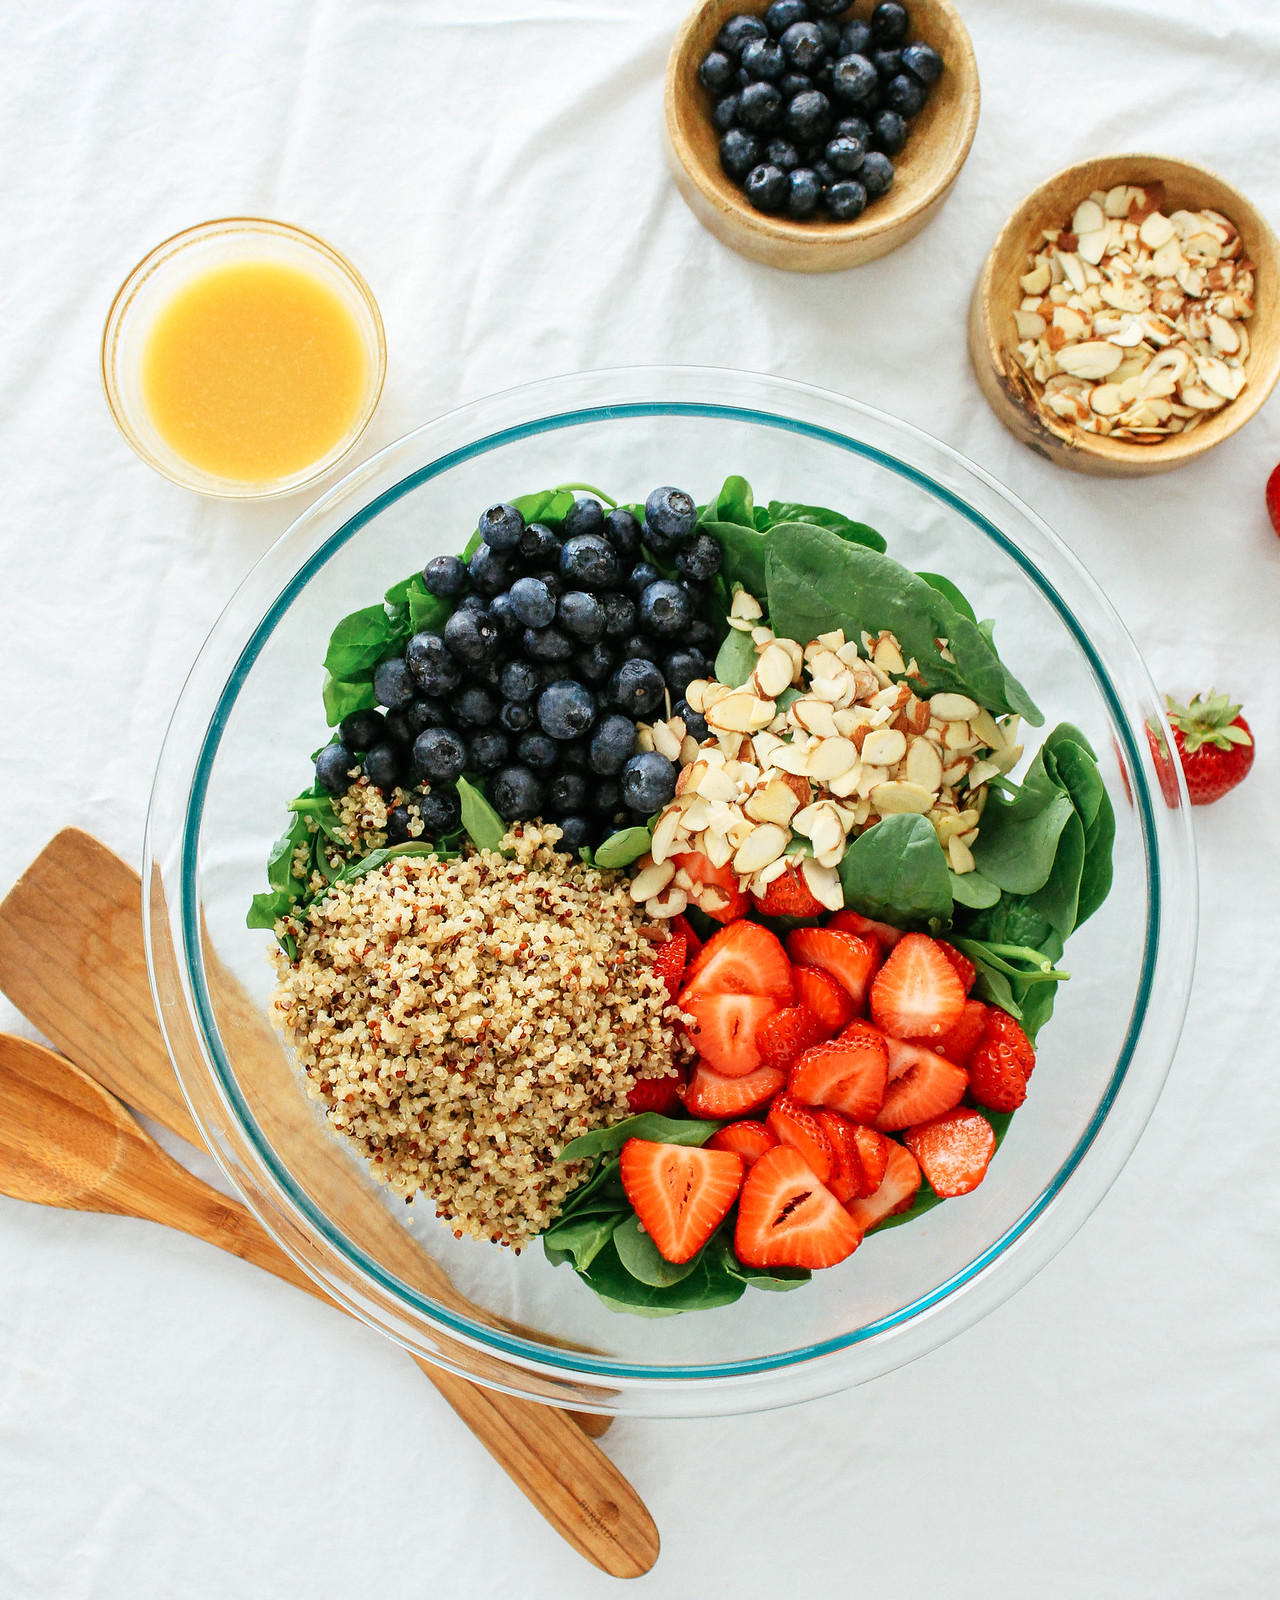 SPINACH + BERRY QUINOA SALAD